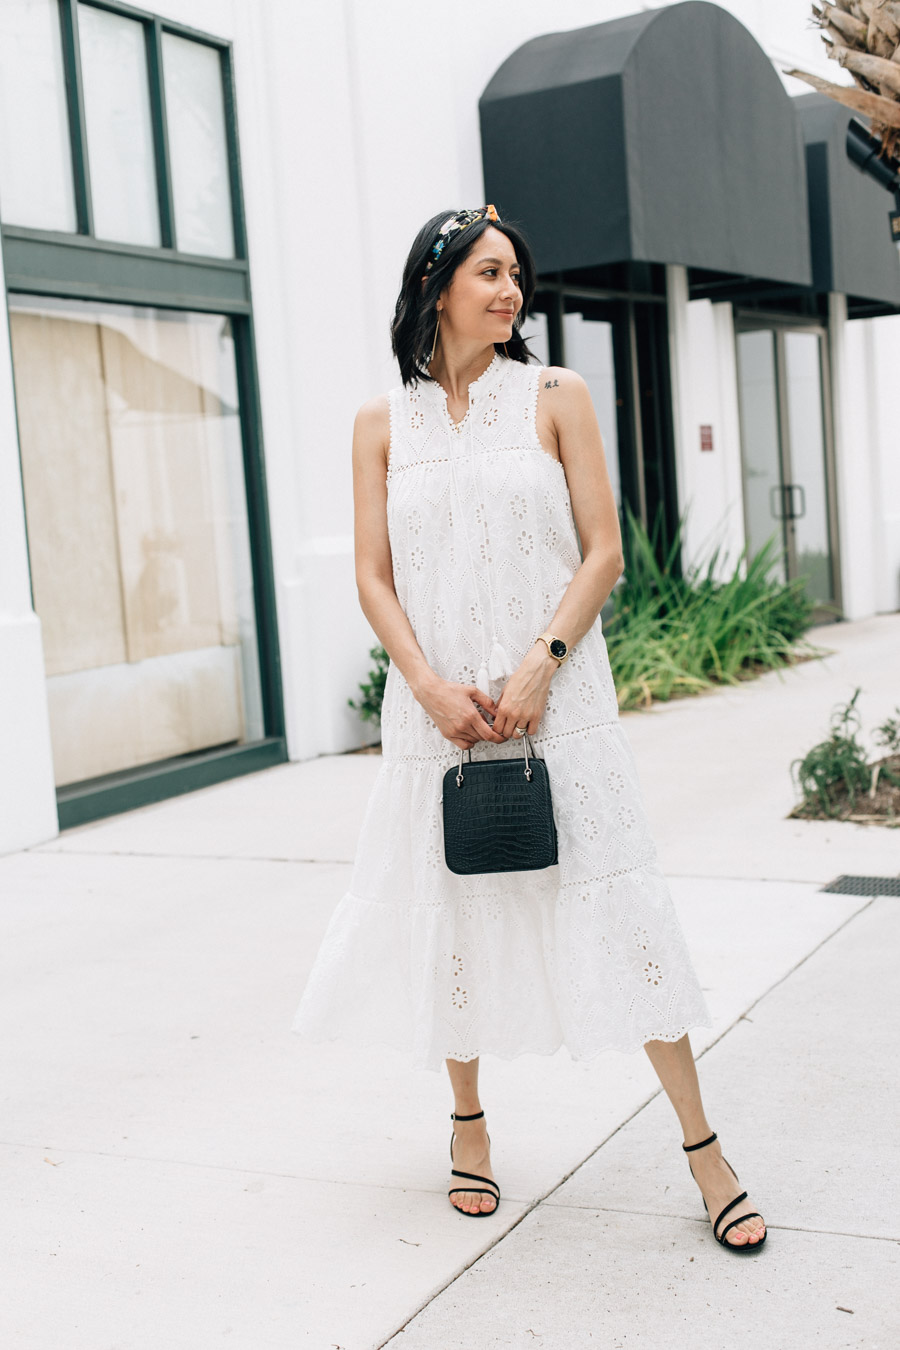 White summer dress & black strappy sandals.